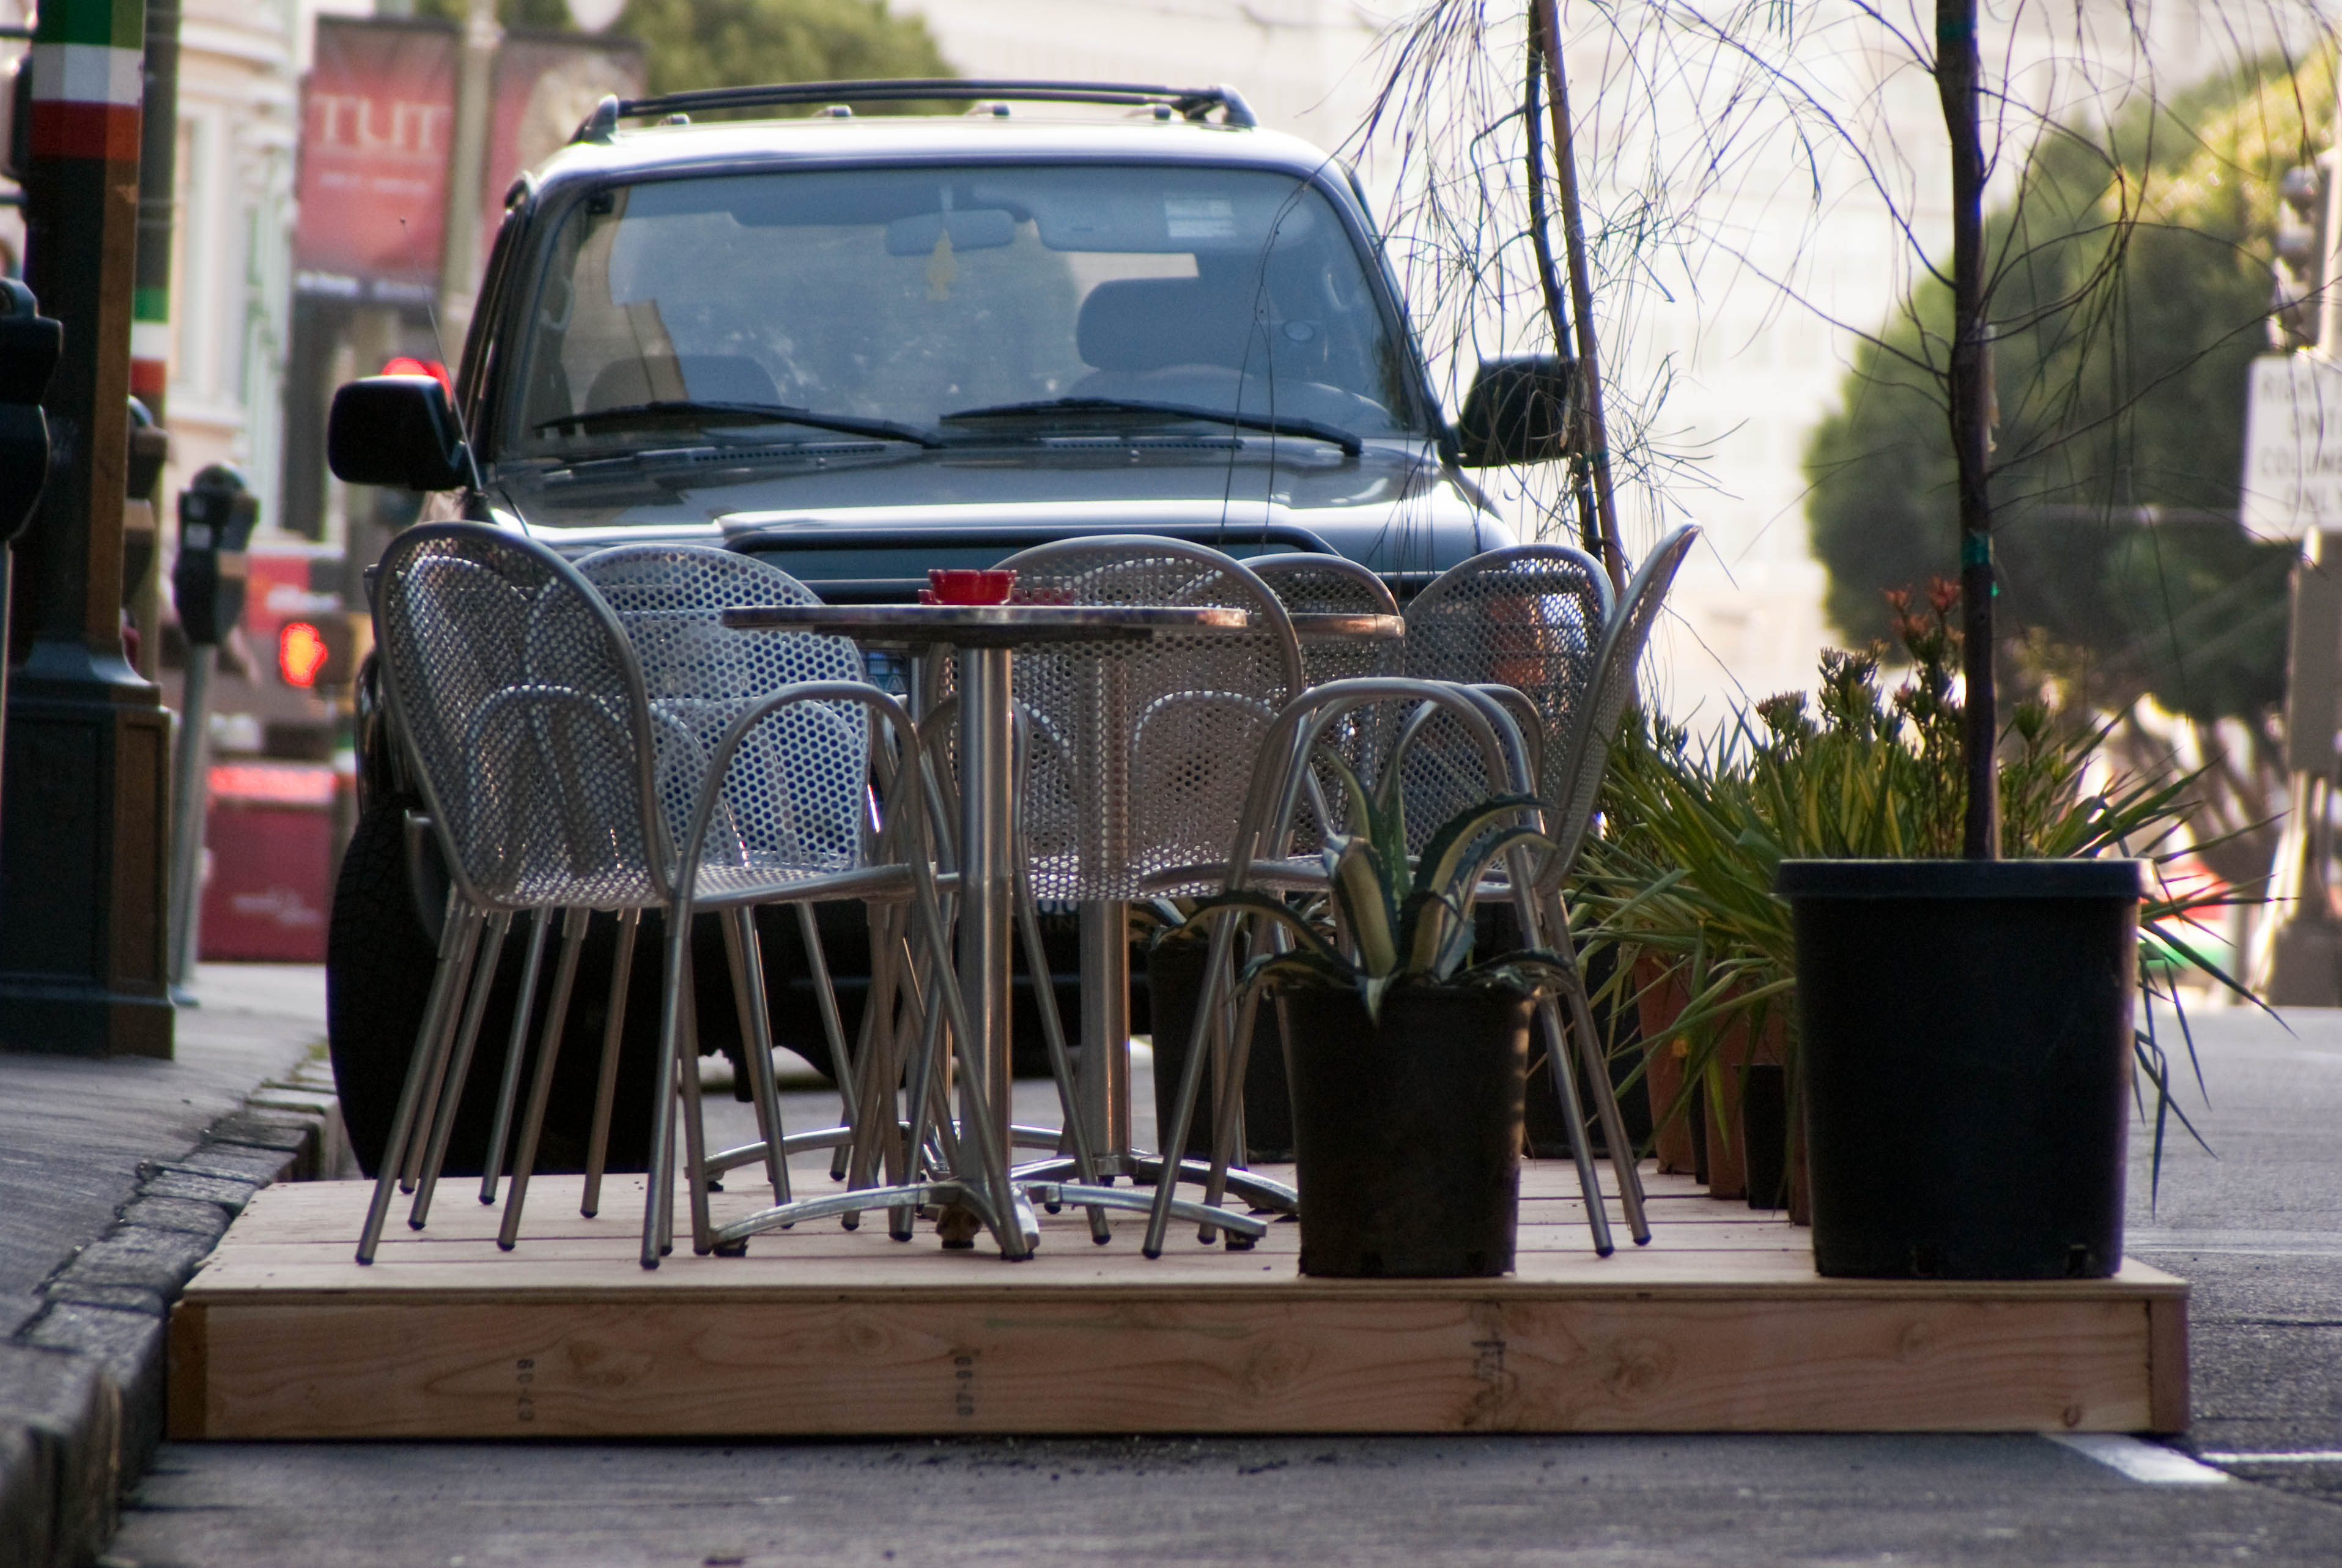 09377 Seating for nine at Caffe Roma Park(ing) Day spot in front of seating for four